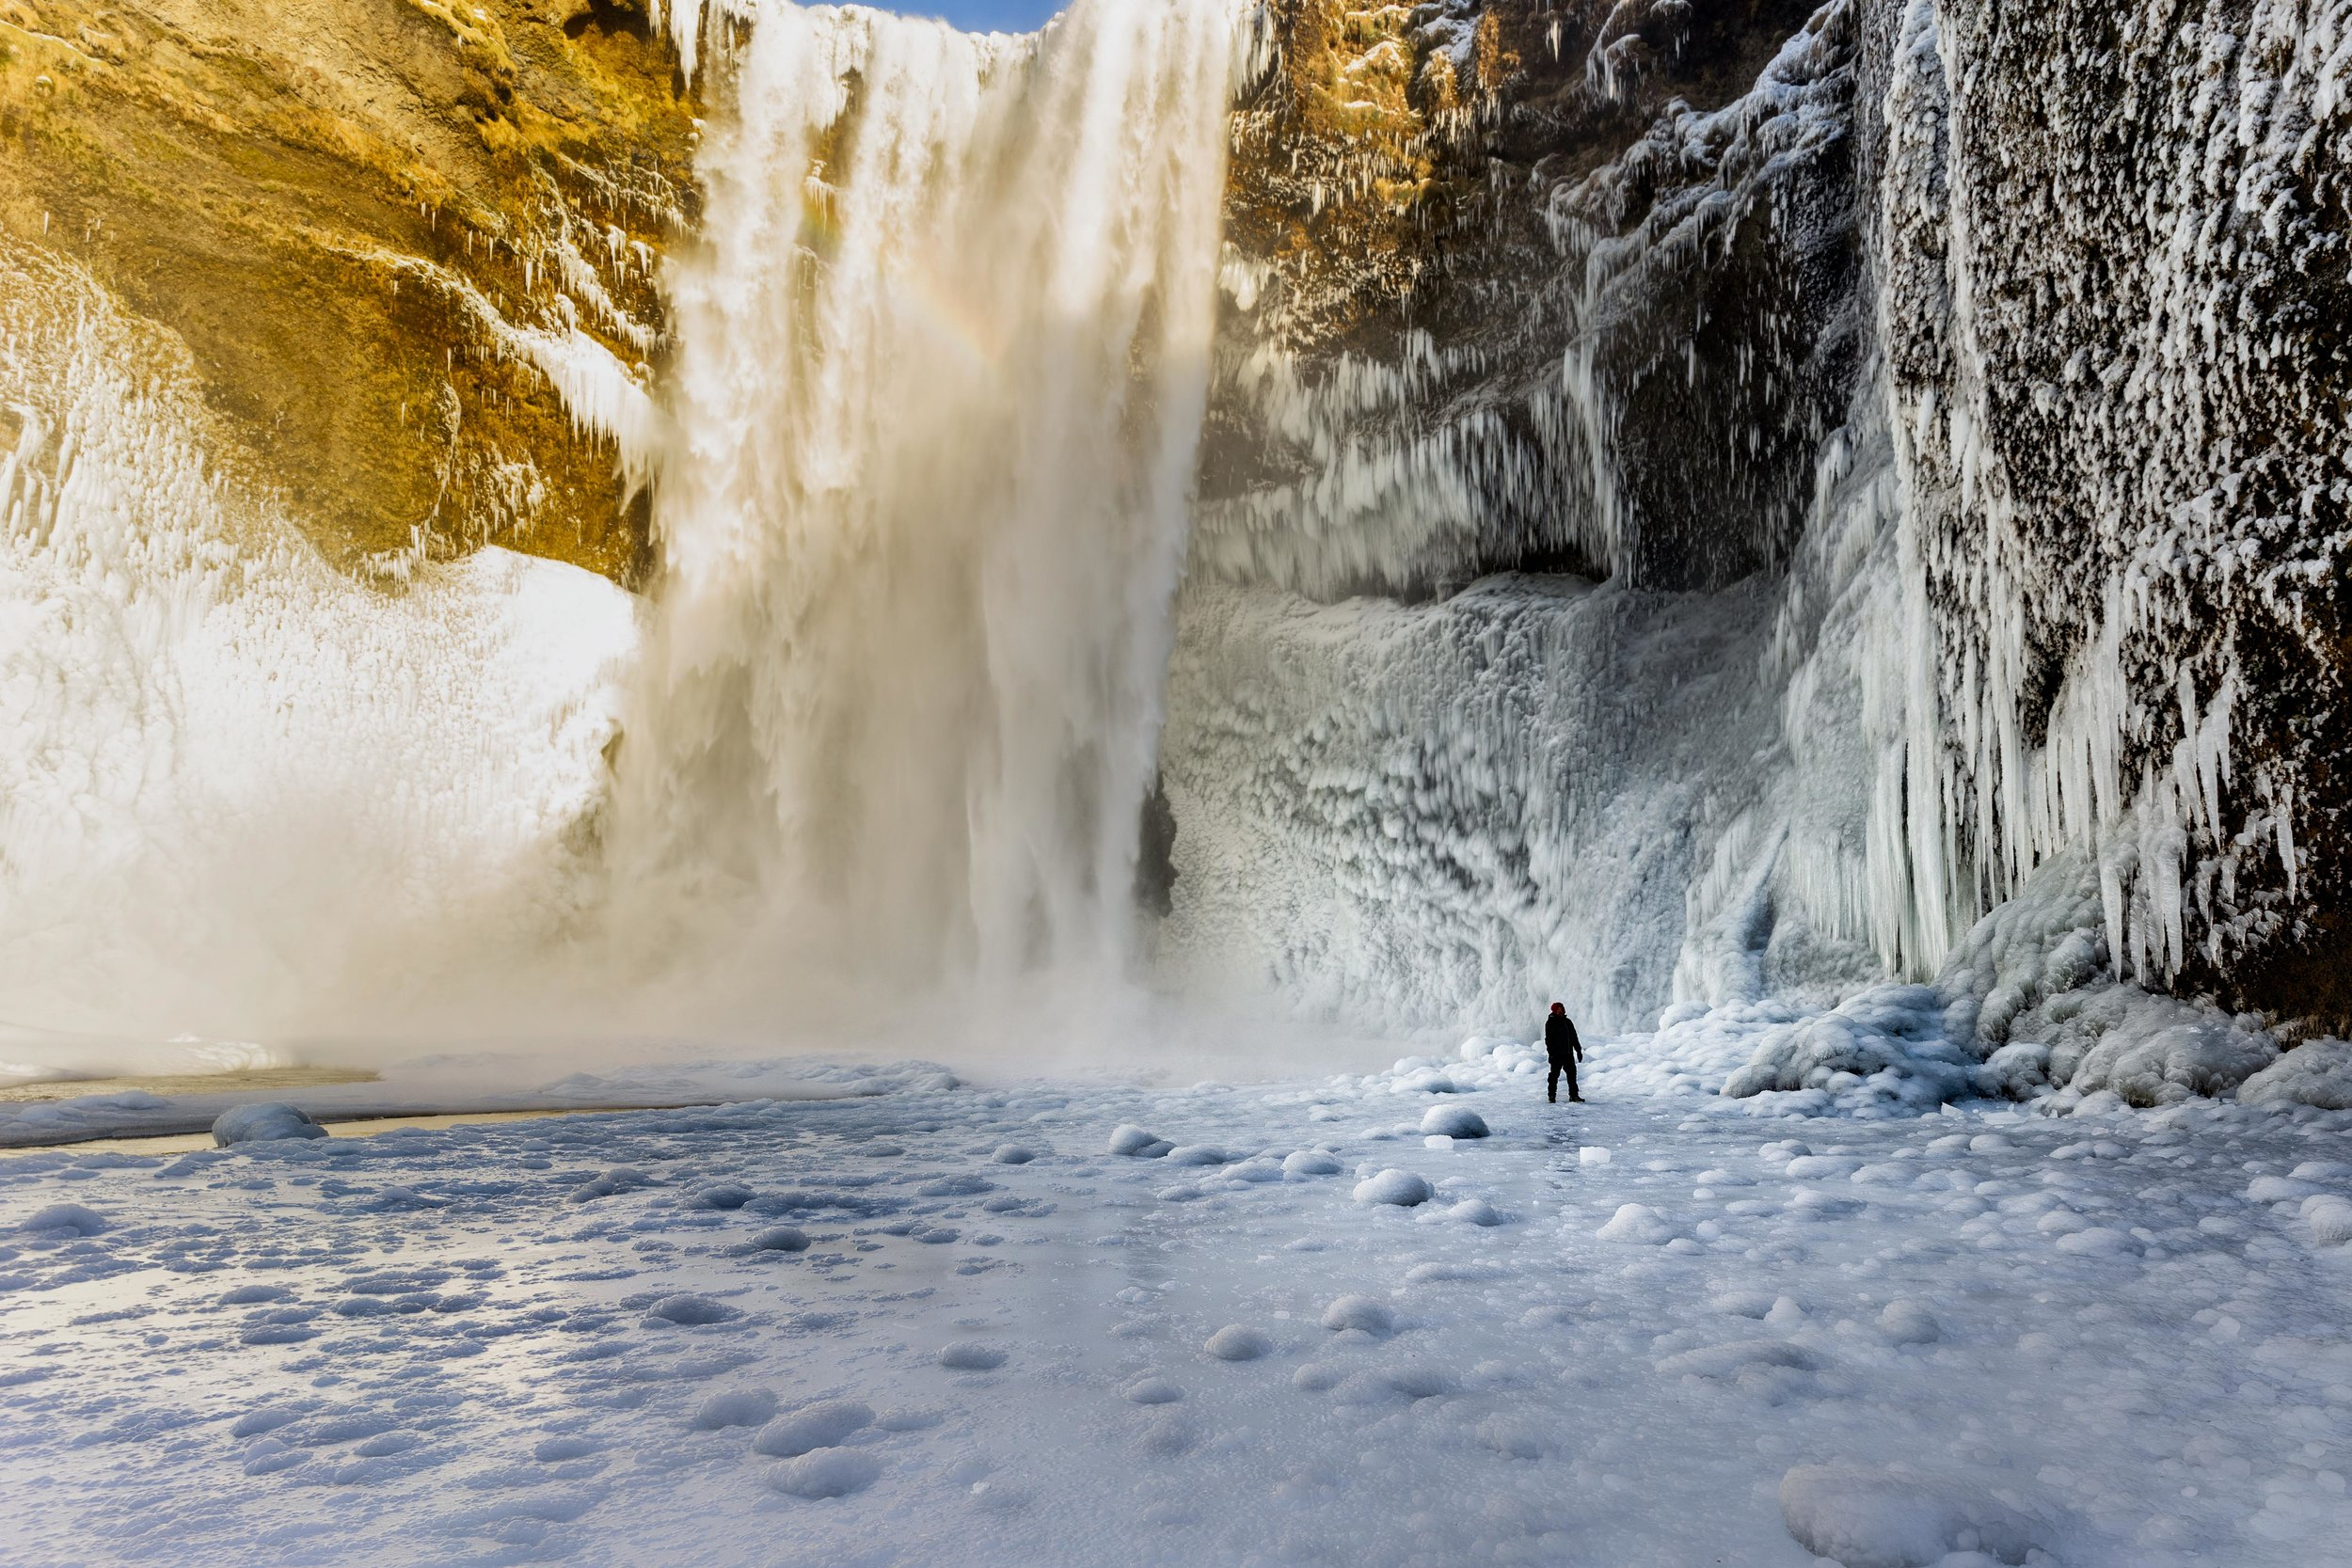 Iceland. snow. travel. adventure. photography. trip. epic landscape. snow. cold. freezing. sunrise. camera with a view 2. epic waterfall.jpg